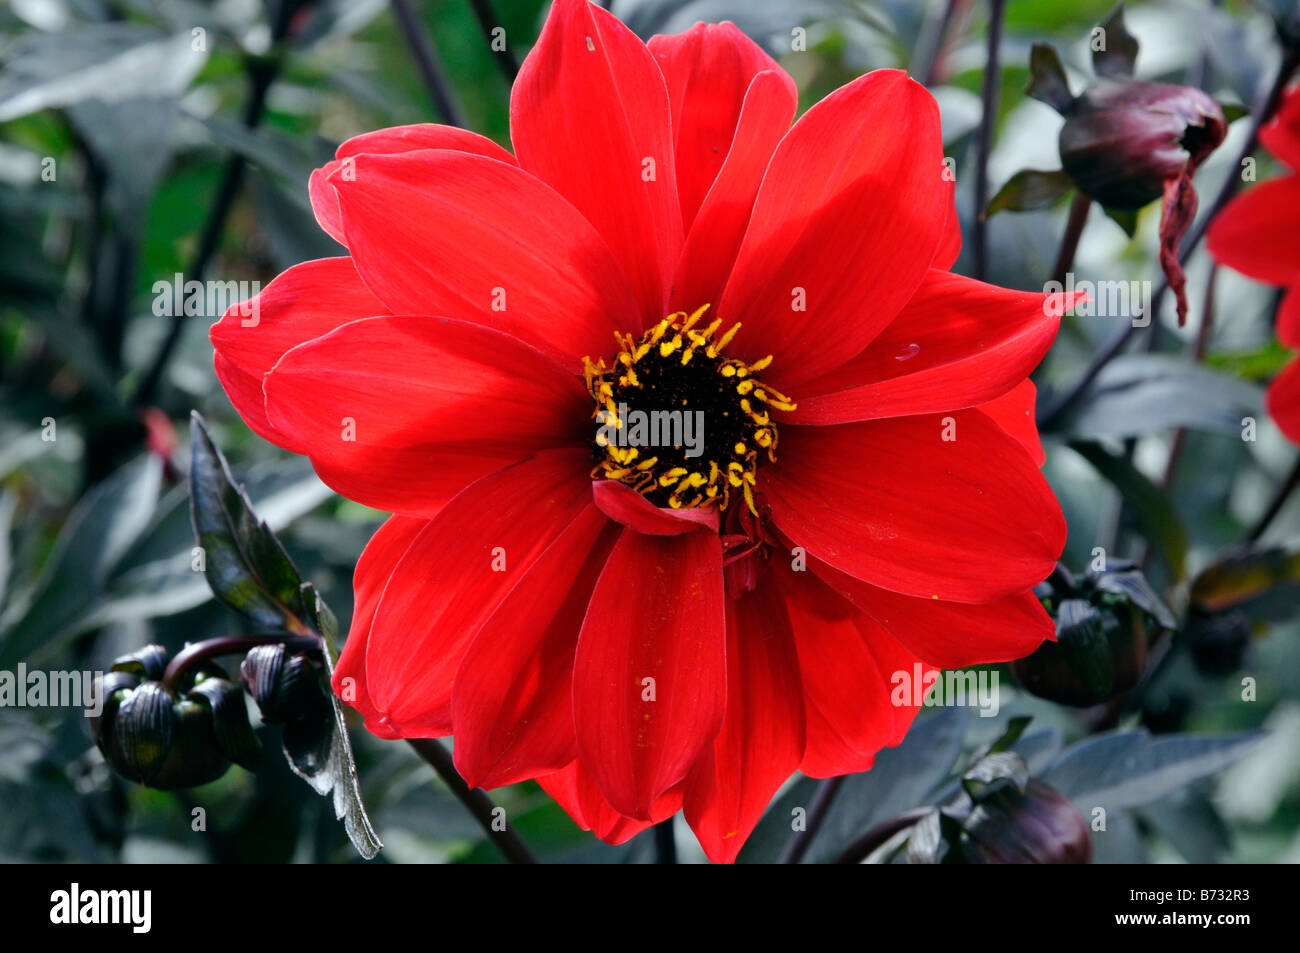 Red Flower Yellow Center Stock Photos Red Flower Yellow Center